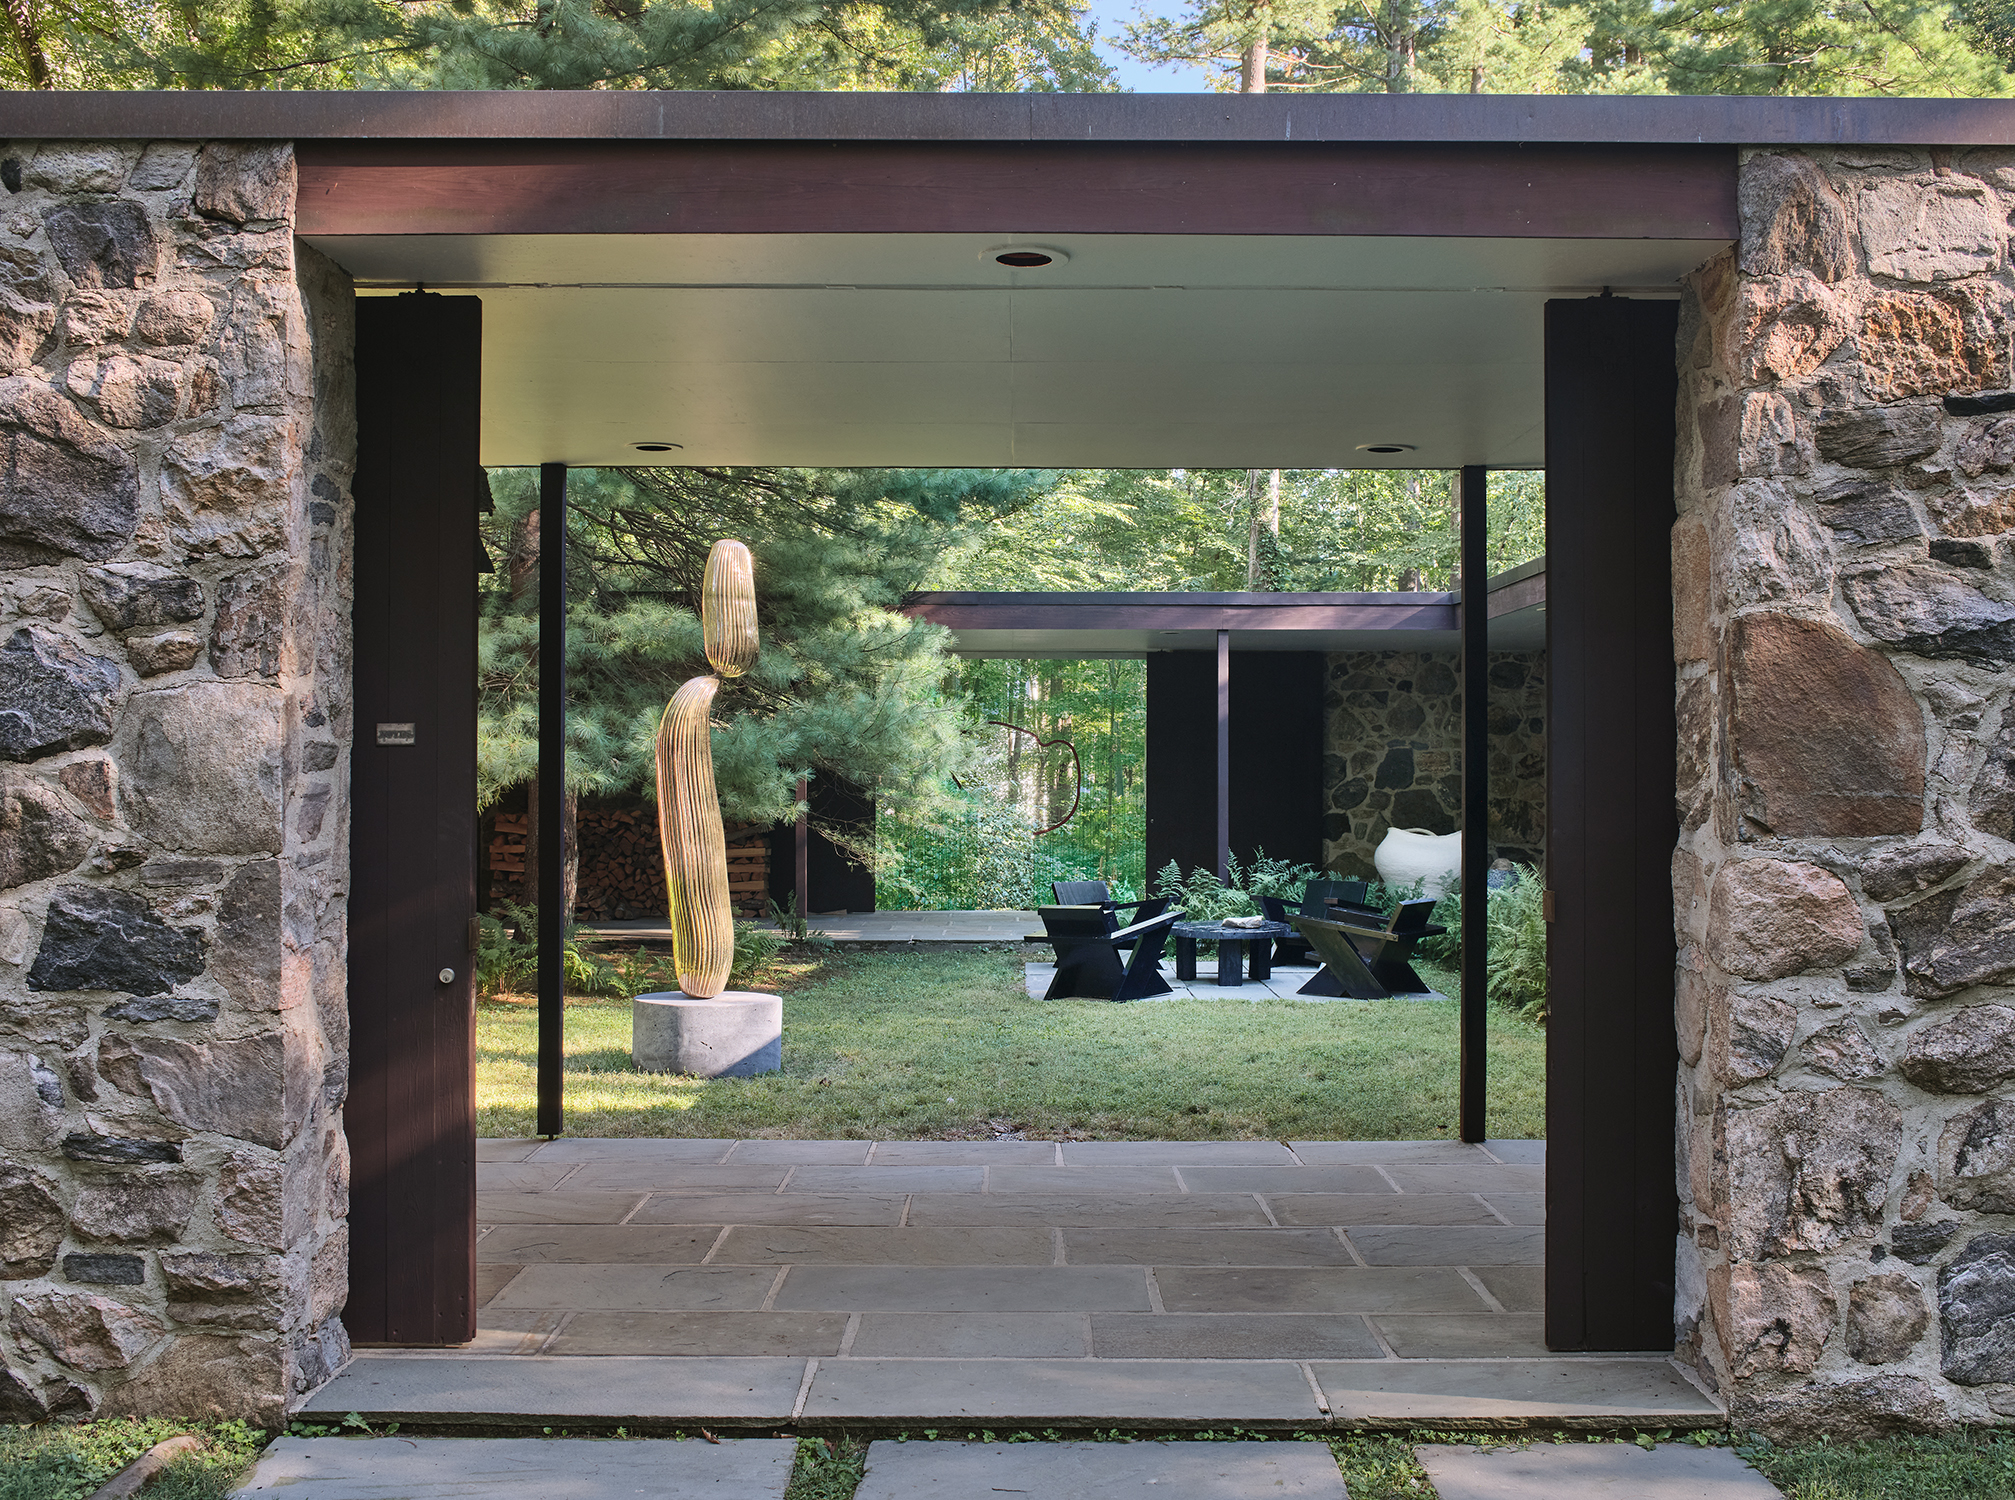 At The Noyes House: Blum & Poe, Mendes Wood DM and Object & Thing. The Noyes House, New Canaan, Connecticut. Photo by Michael Biondo. Works pictured [left to right]: Alma Allen, Not Yet Titled (2020); Daniel Steegmann Mangrané, Untitled (2020); Green River Project LLC, Pine Outdoor Coffee Table and Pine-Board Deck Chairs (2020); Kazunori Hamana, Untitled (2019).